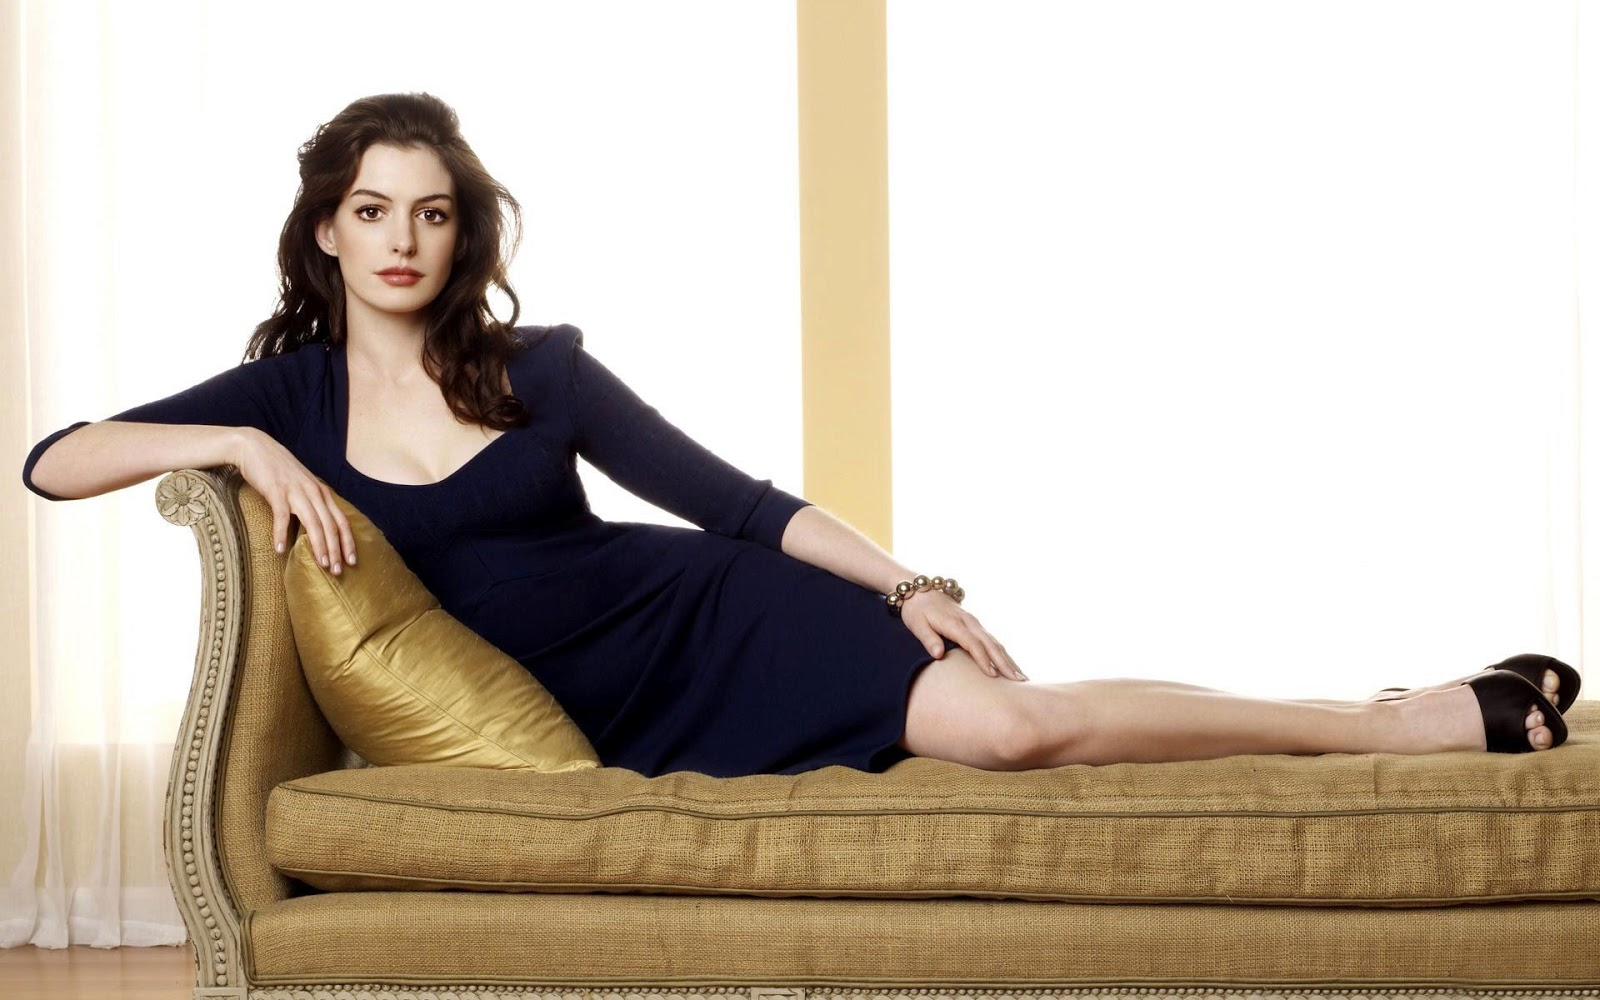 Anne Hathaway Fresh HD Wallpapers 2013 | World HD Wallpapers